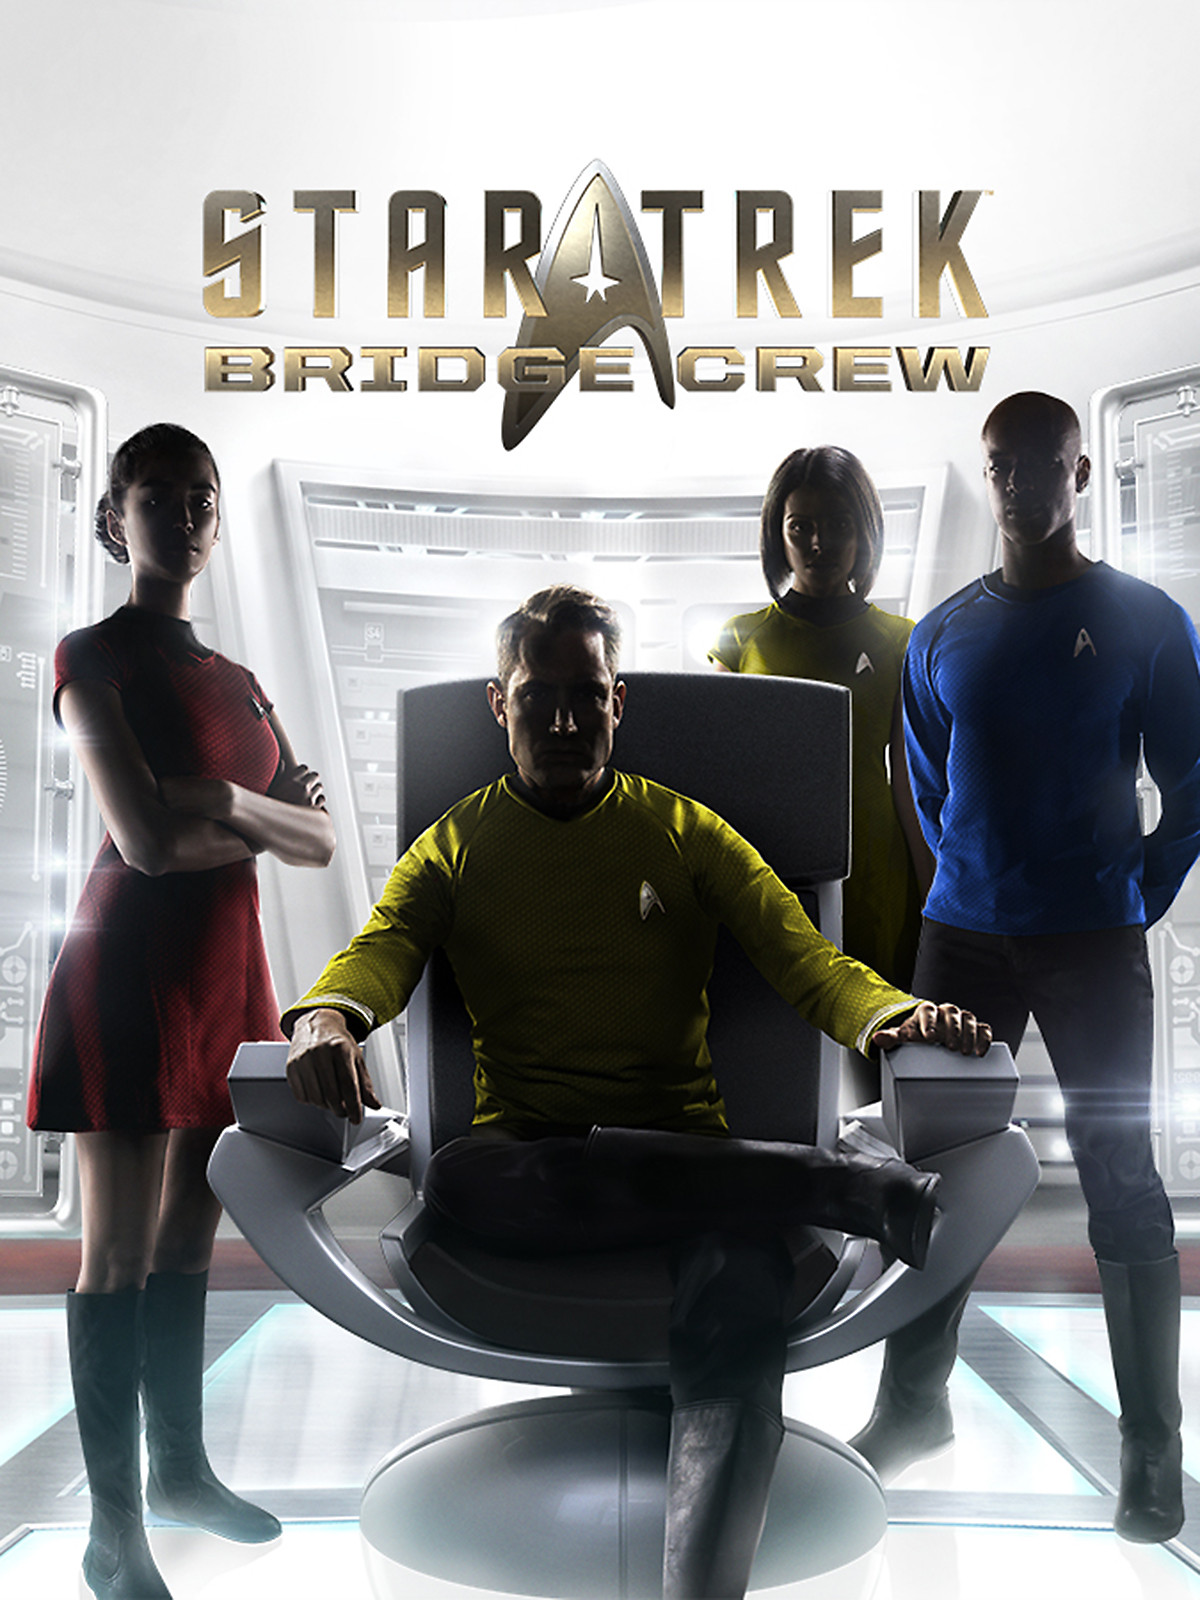 Star Trek Bridge Crew - PS VR Multiplayer